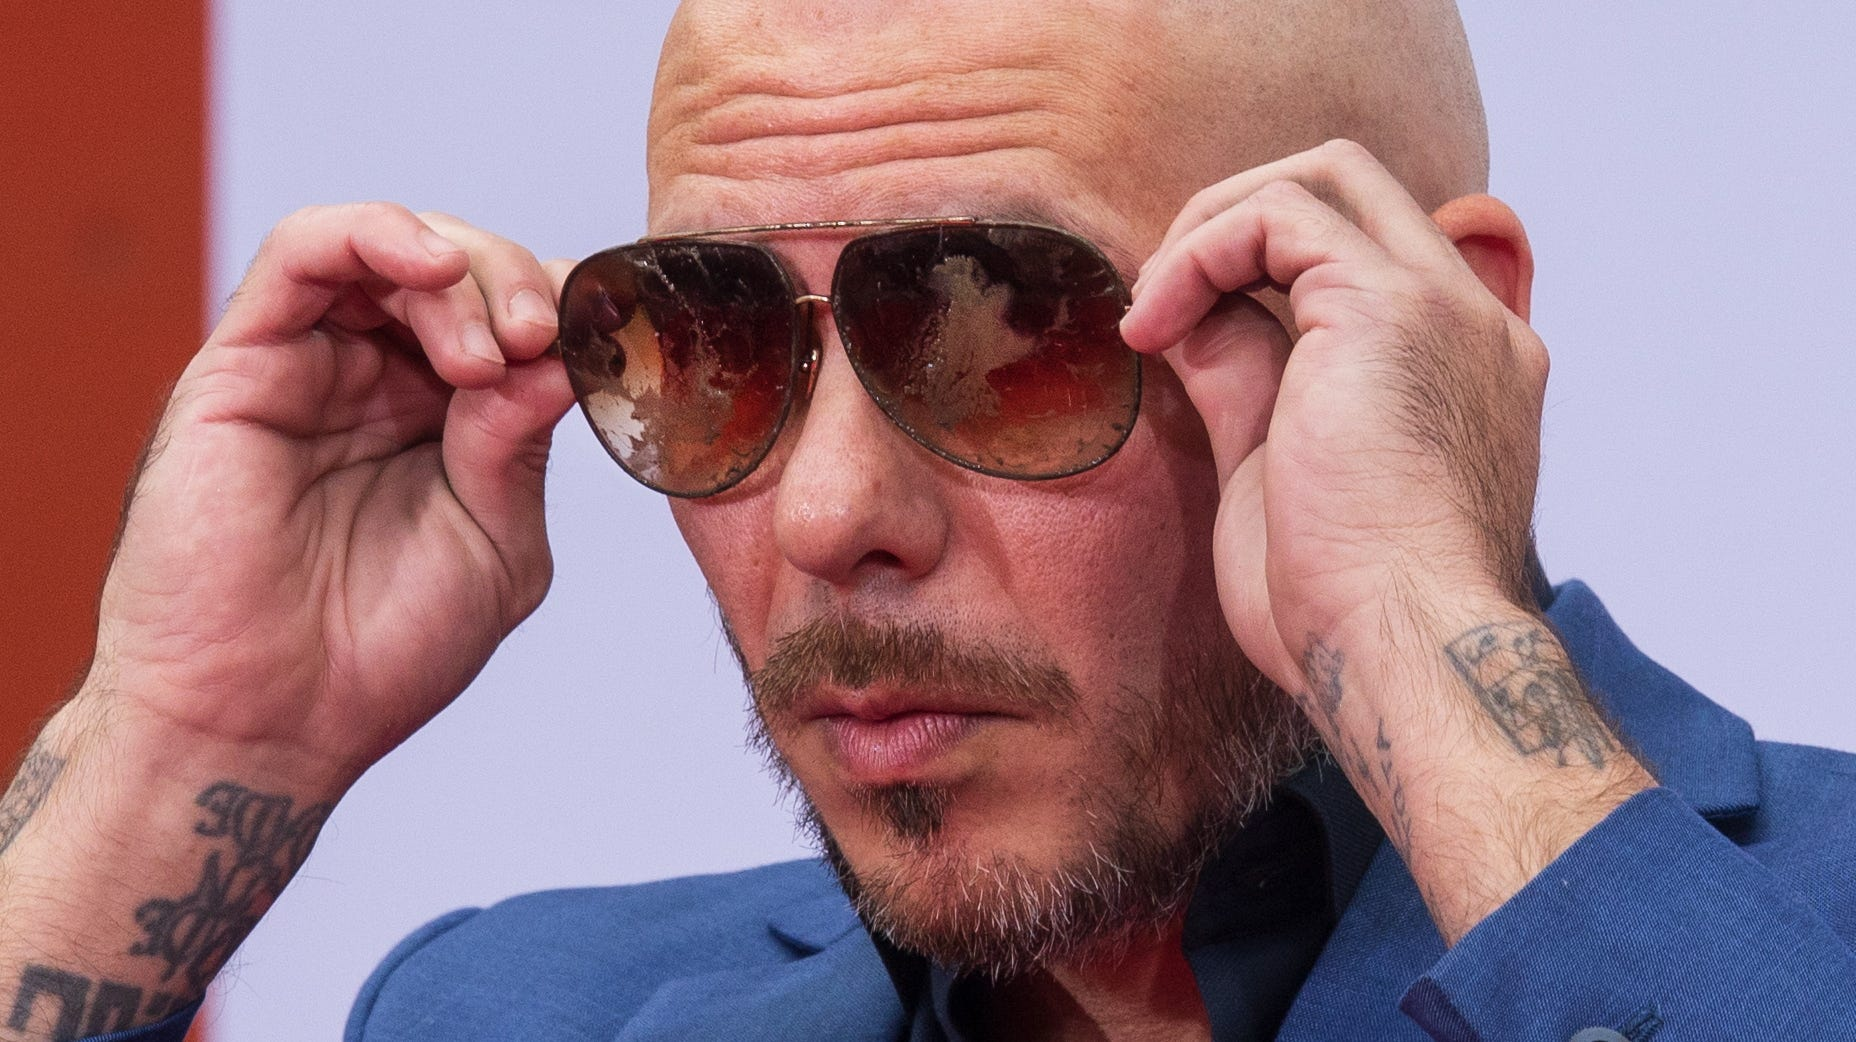 epaselect epa07231952 US musician Armando Christian 'Pitbull' Perez holds up his sunglasses after putting them in cement along with his hands and feet during a special ceremony at the TCL Chinese Theatre in Hollywood, California, USA, 14 December 2018. In celebration of the opening of the first TCL Chinese Theatre outside of Hollywood, Pitbull's cement hand and footprints will be moved to a new location in San Diego.  EPA-EFE/EUGENE GARCIA ORG XMIT: EAG09